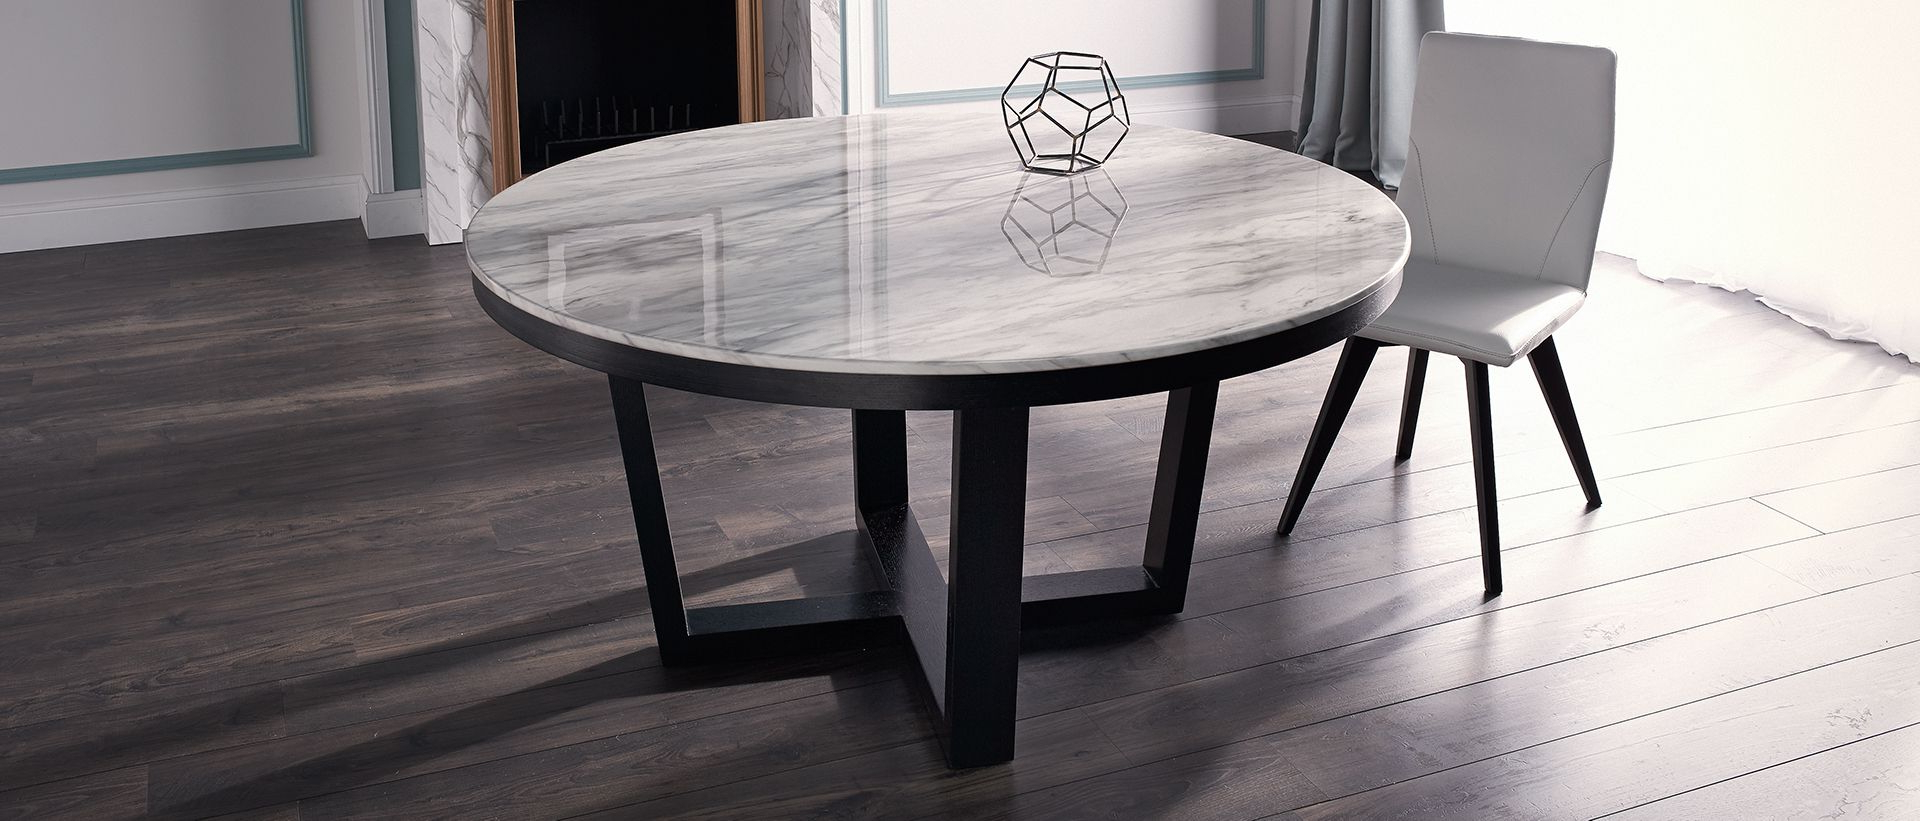 Round, Wood & Concrete Tables (View 23 of 30)